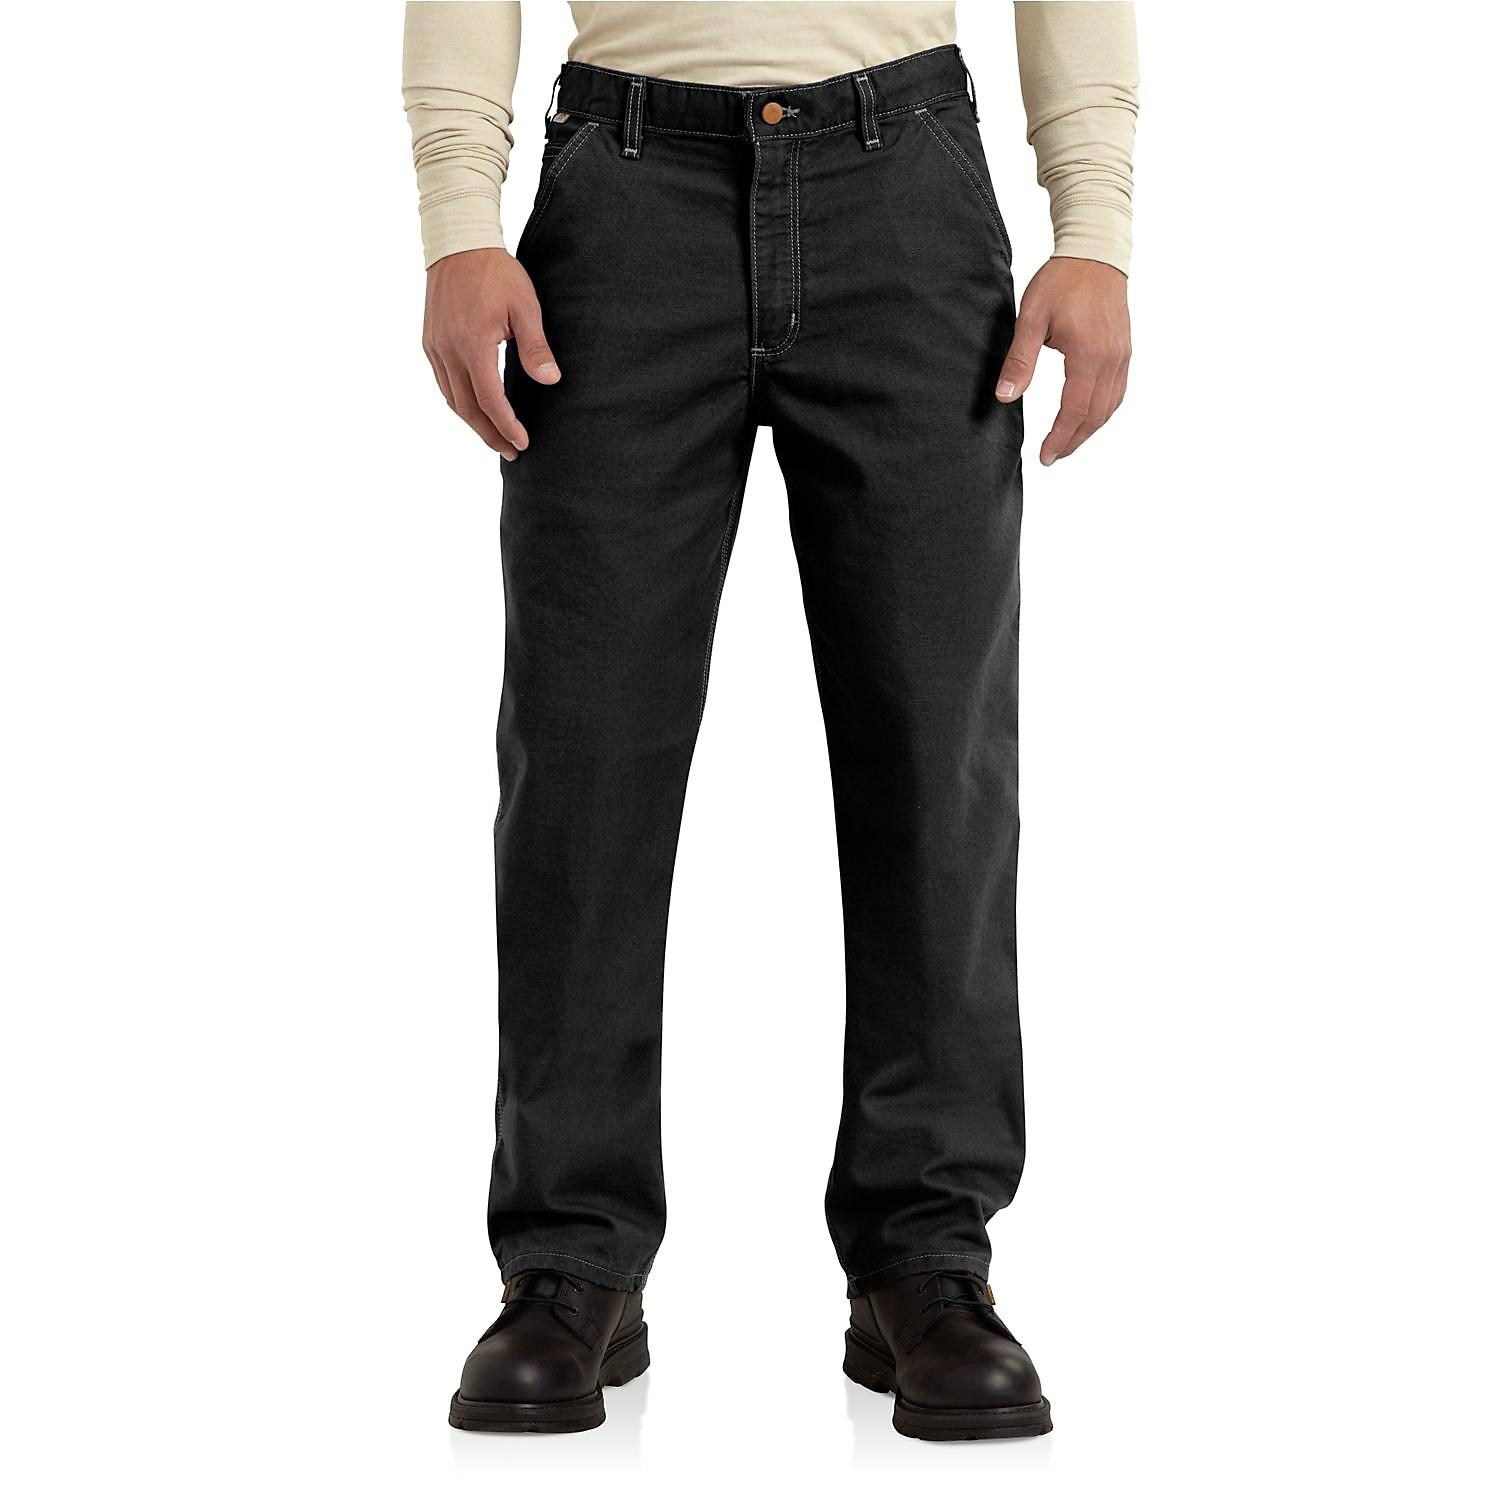 bd6dc0dc724e Carhartt. Black Flame-resistant Washed Duck Work Dungaree Pants (for Men)